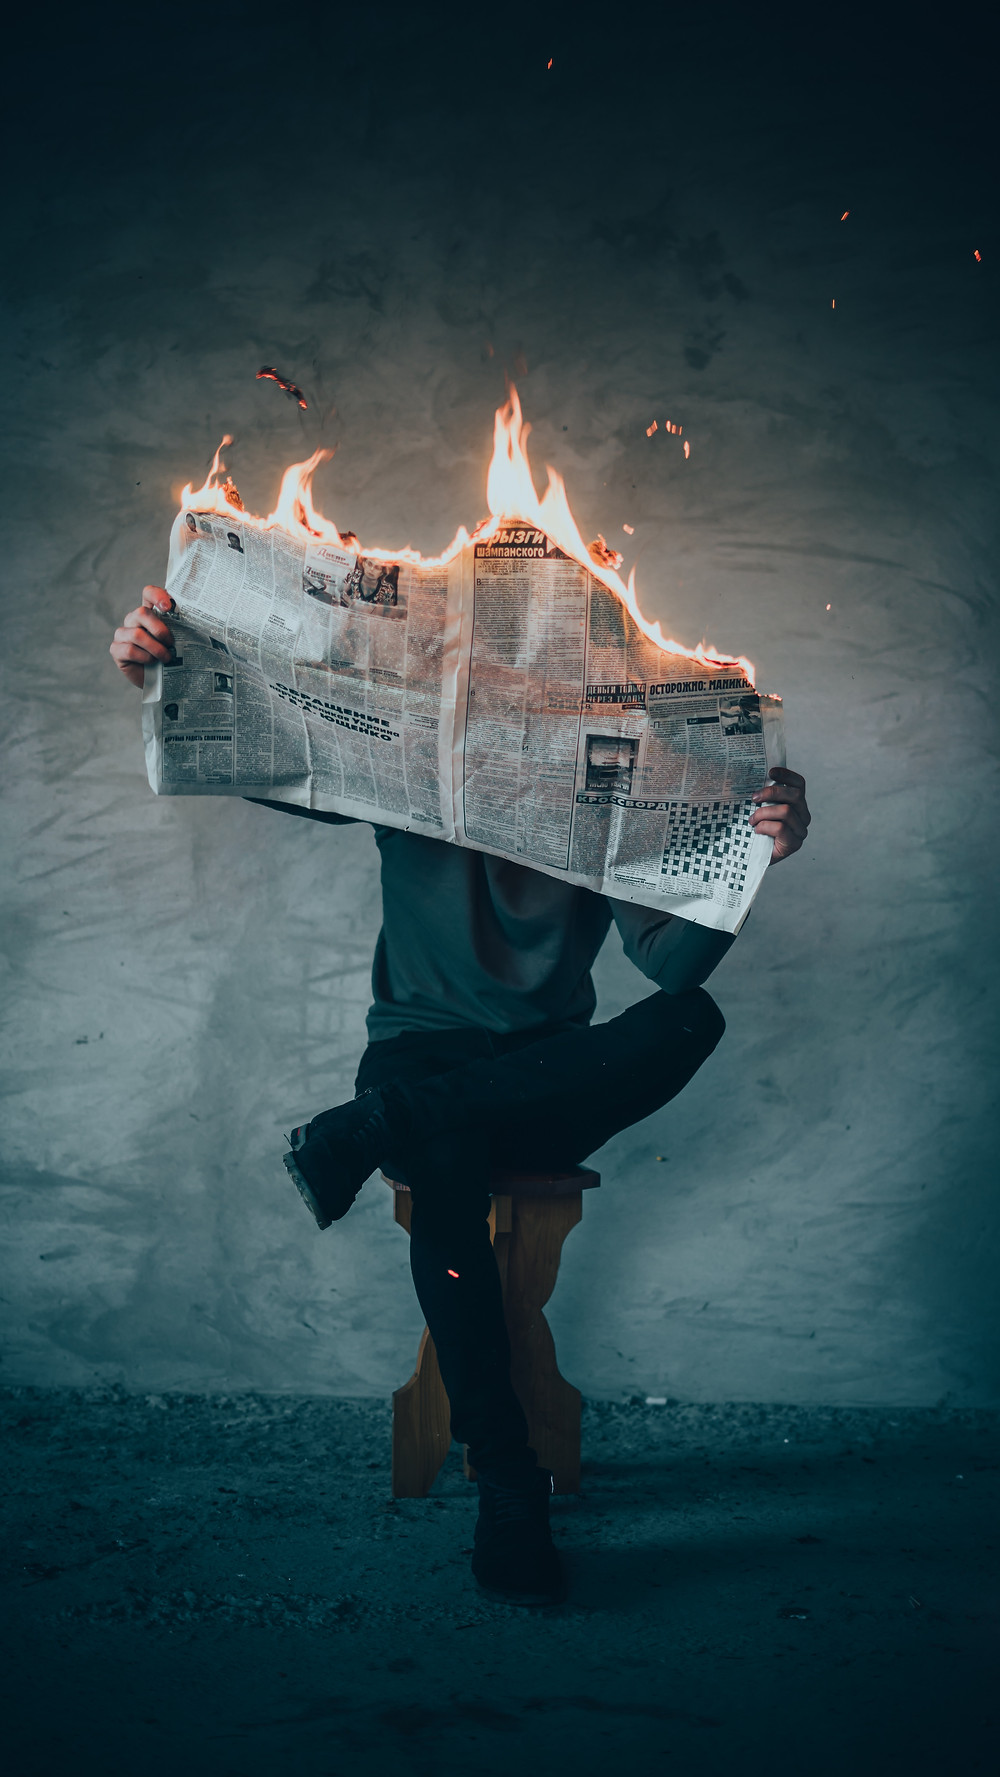 seated person holding a burning newspaper that hides the face